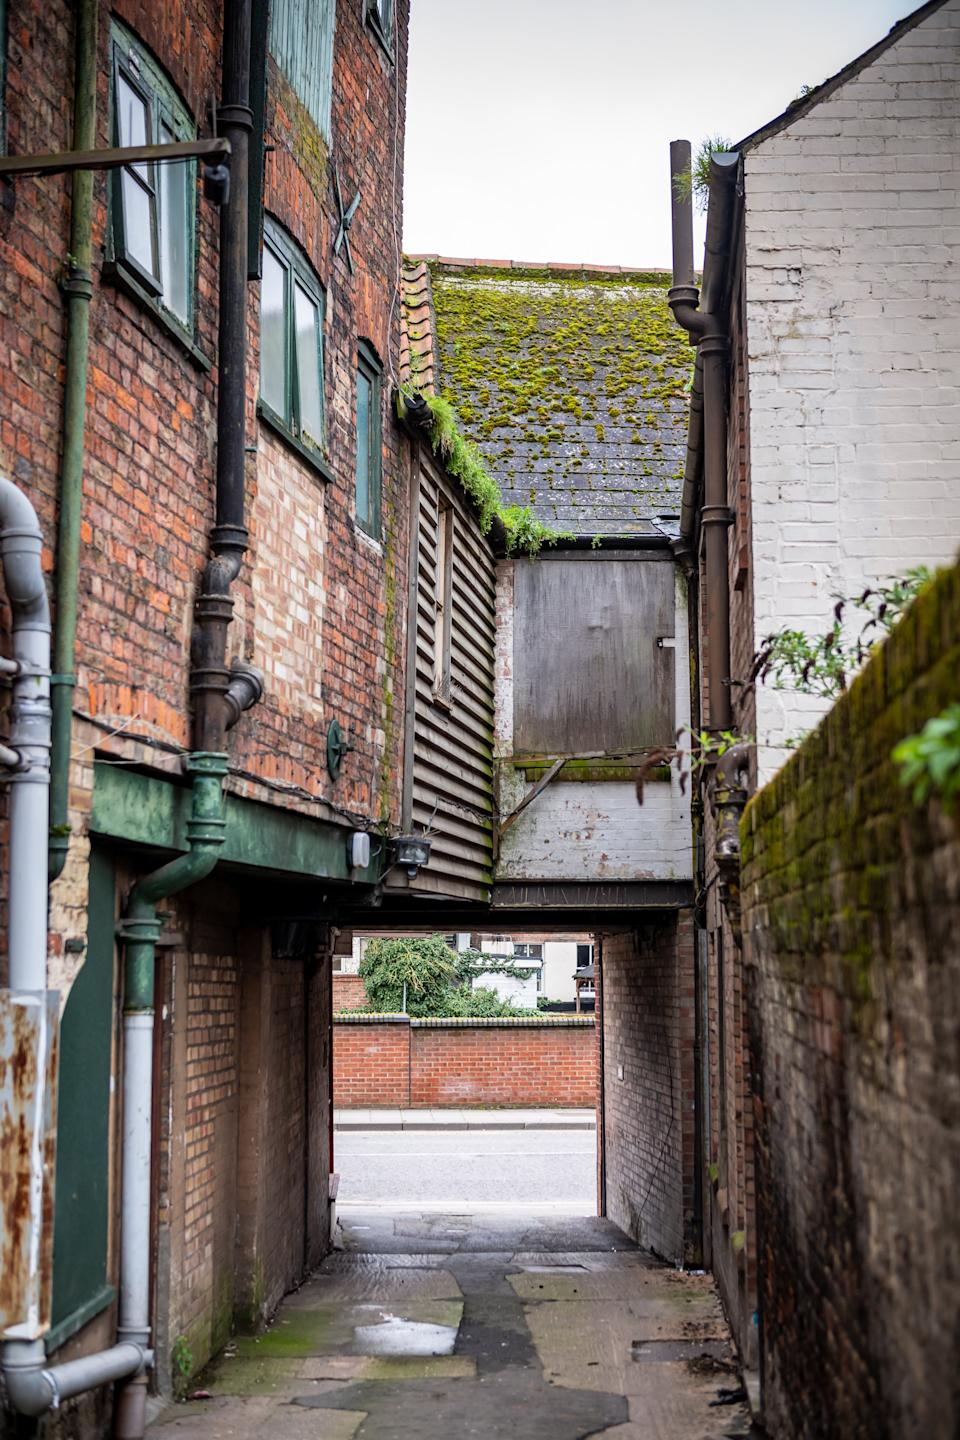 The room is above an alleyway (Picture: SWNS)